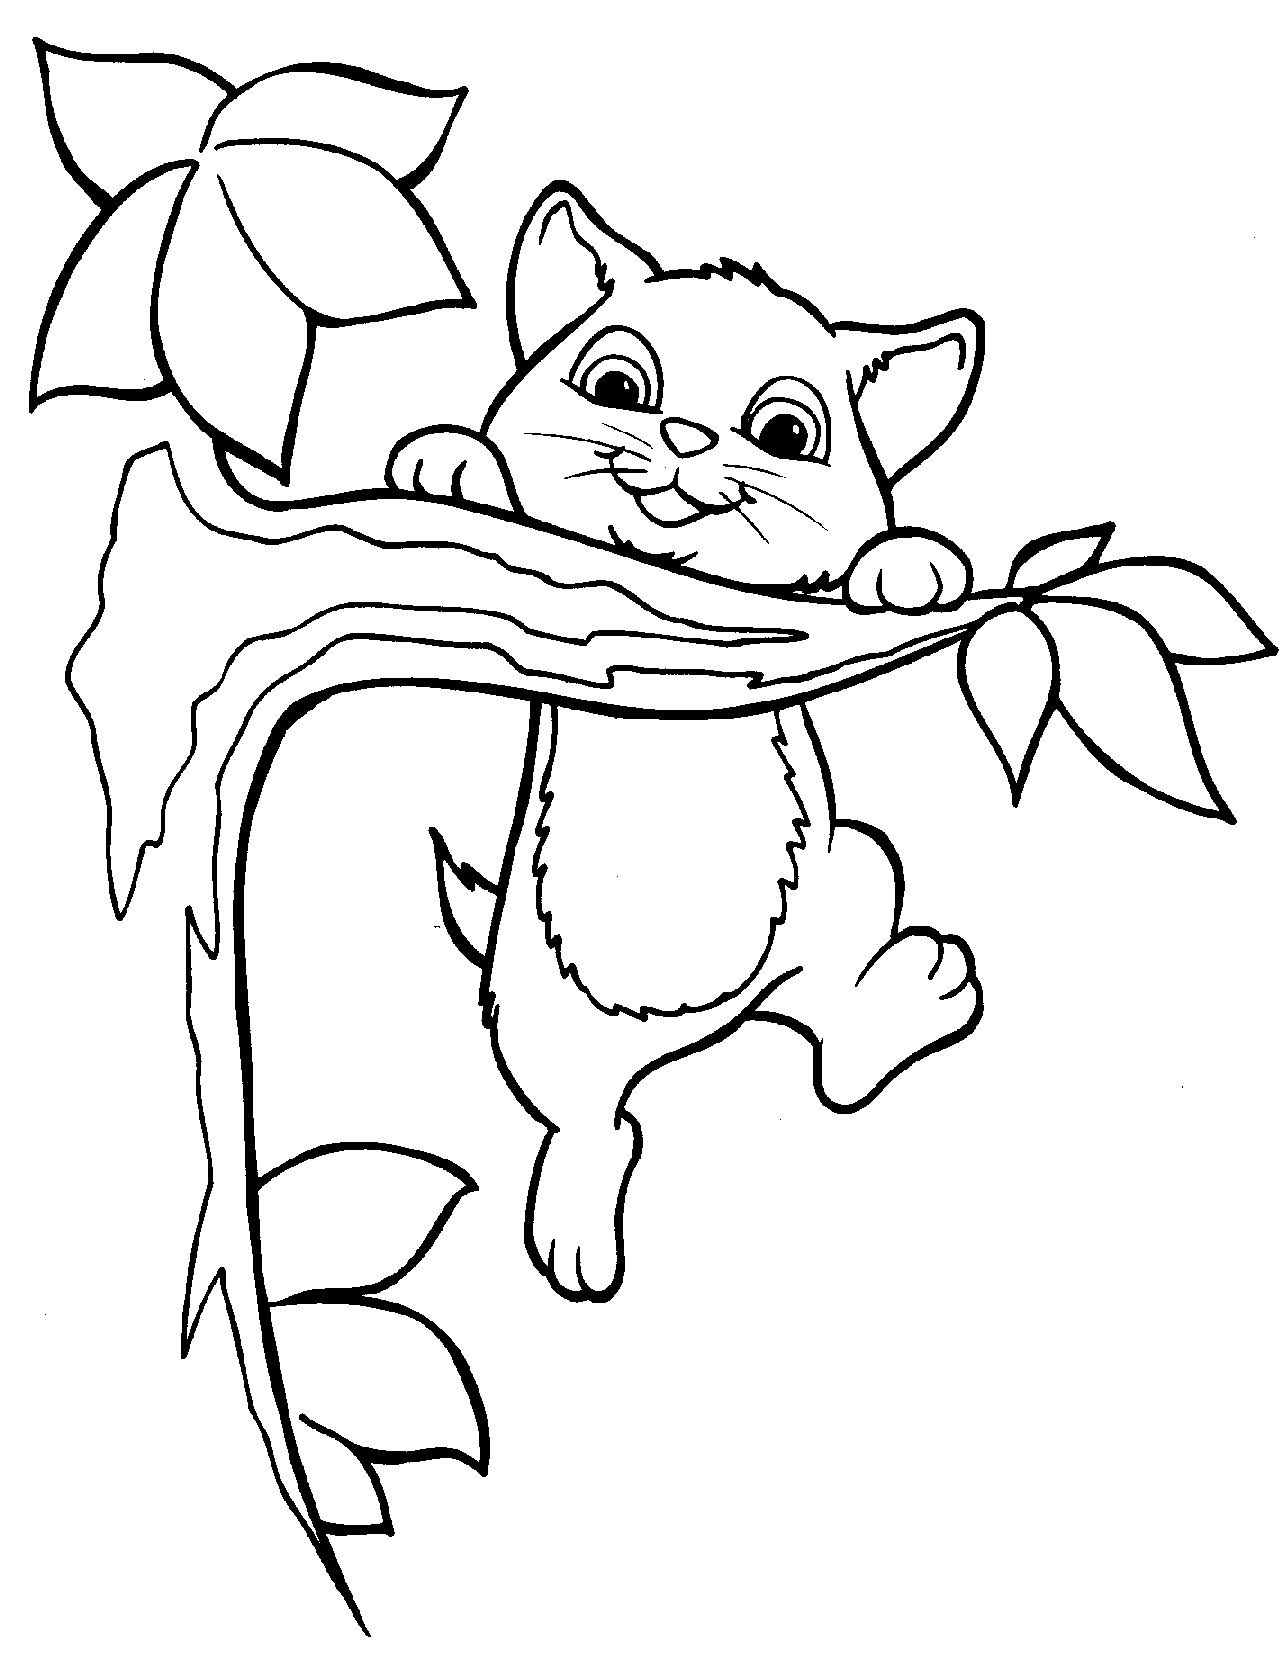 Cat Tree Cats Coloring Pages For Teens And Adults Disegni Da Colorare Libri Da Colorare Disegni